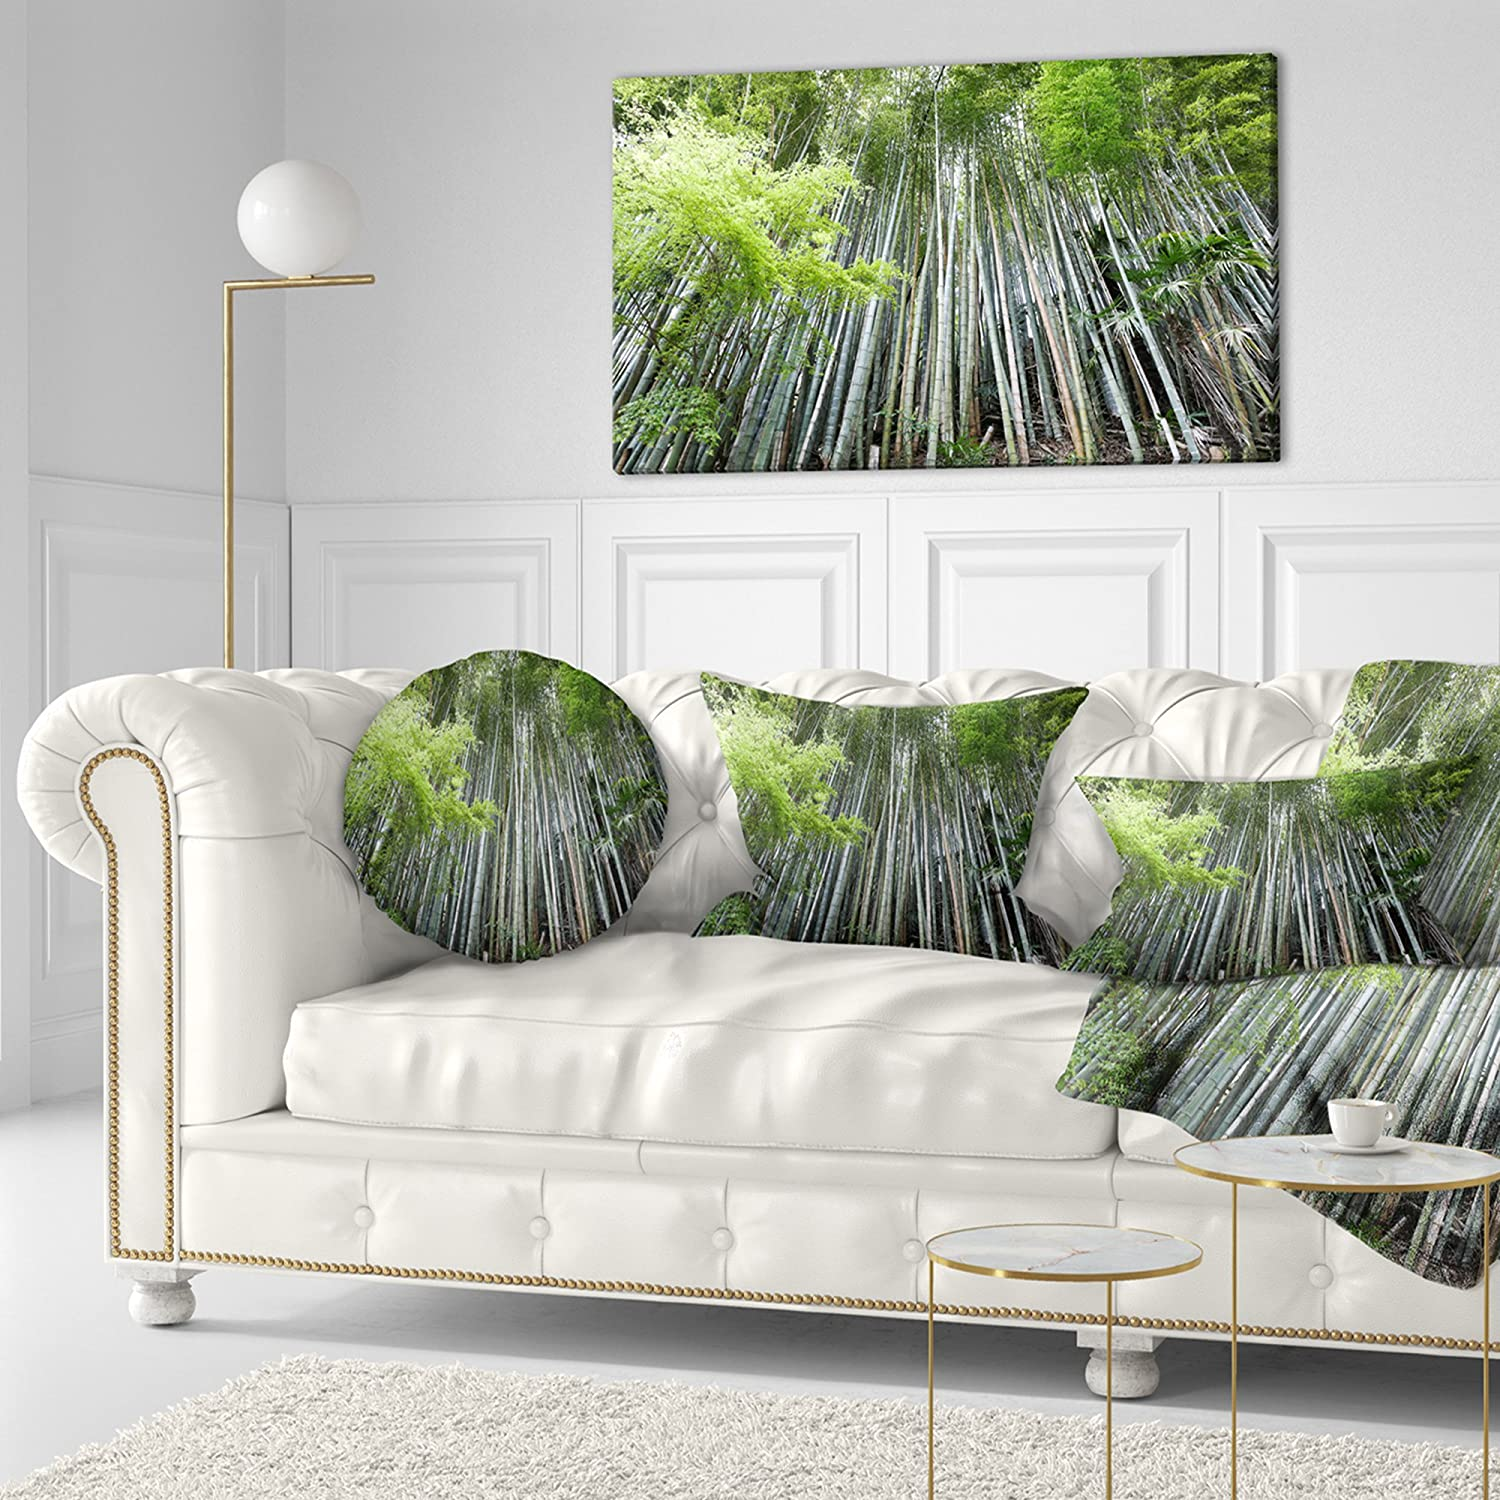 Insert Printed On Both Side Designart CU11177-20-20-C Dense Bamboo Japan Forest Round Cushion Cover for Living Room Sofa Throw Pillow 20